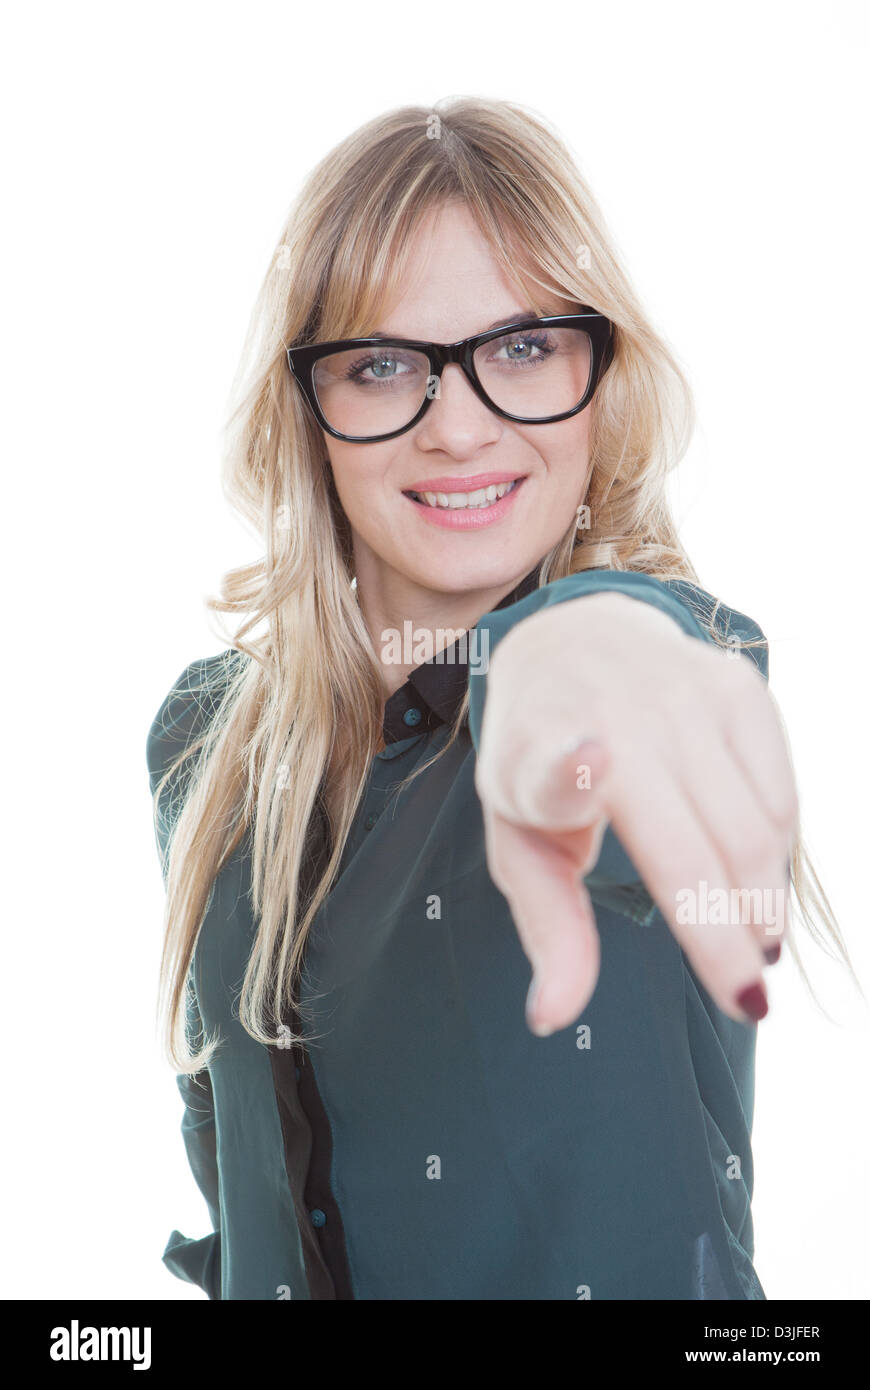 business woman pointing finger showing or demonstrating - Stock Image